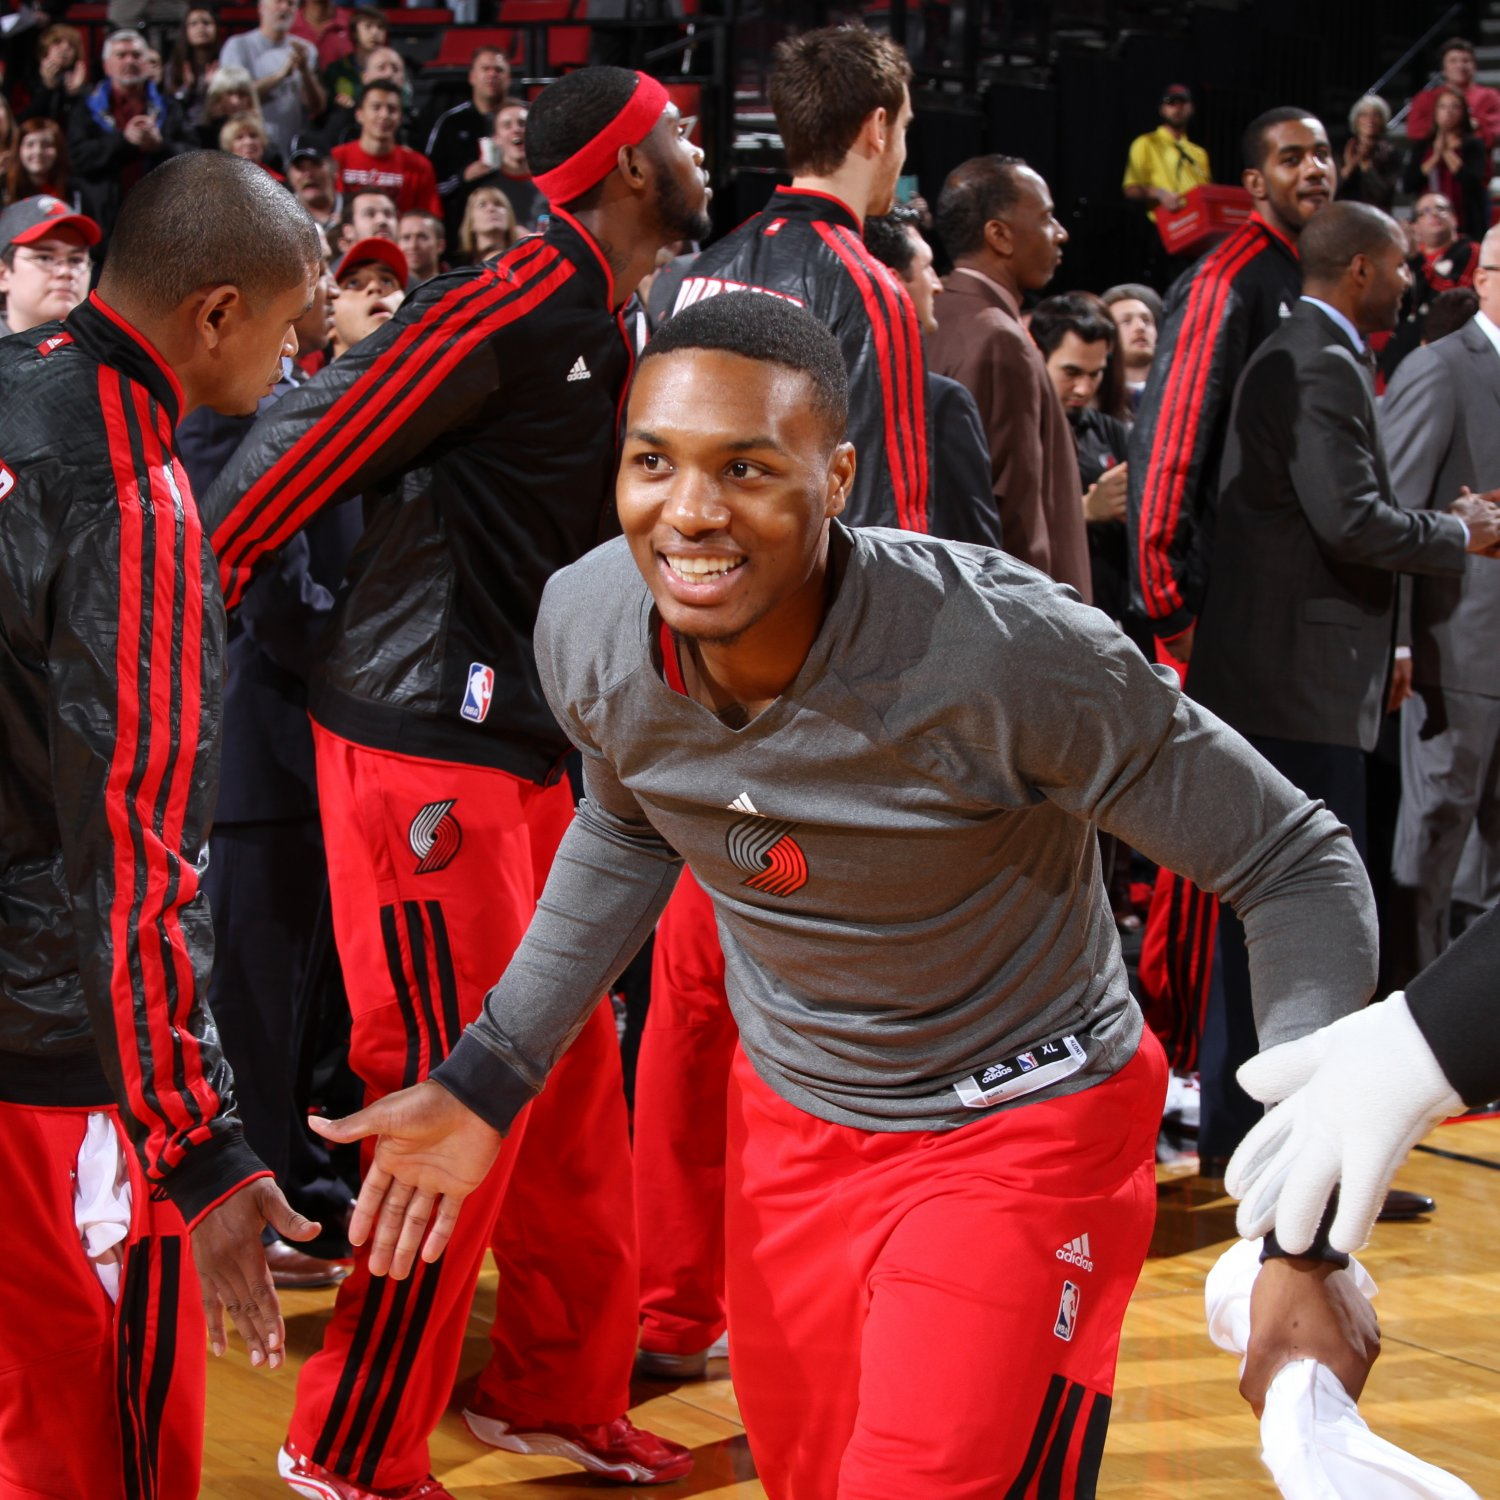 Blazers Team Roster: Portland Trail Blazers Preview 13-14: Lineup, Roster